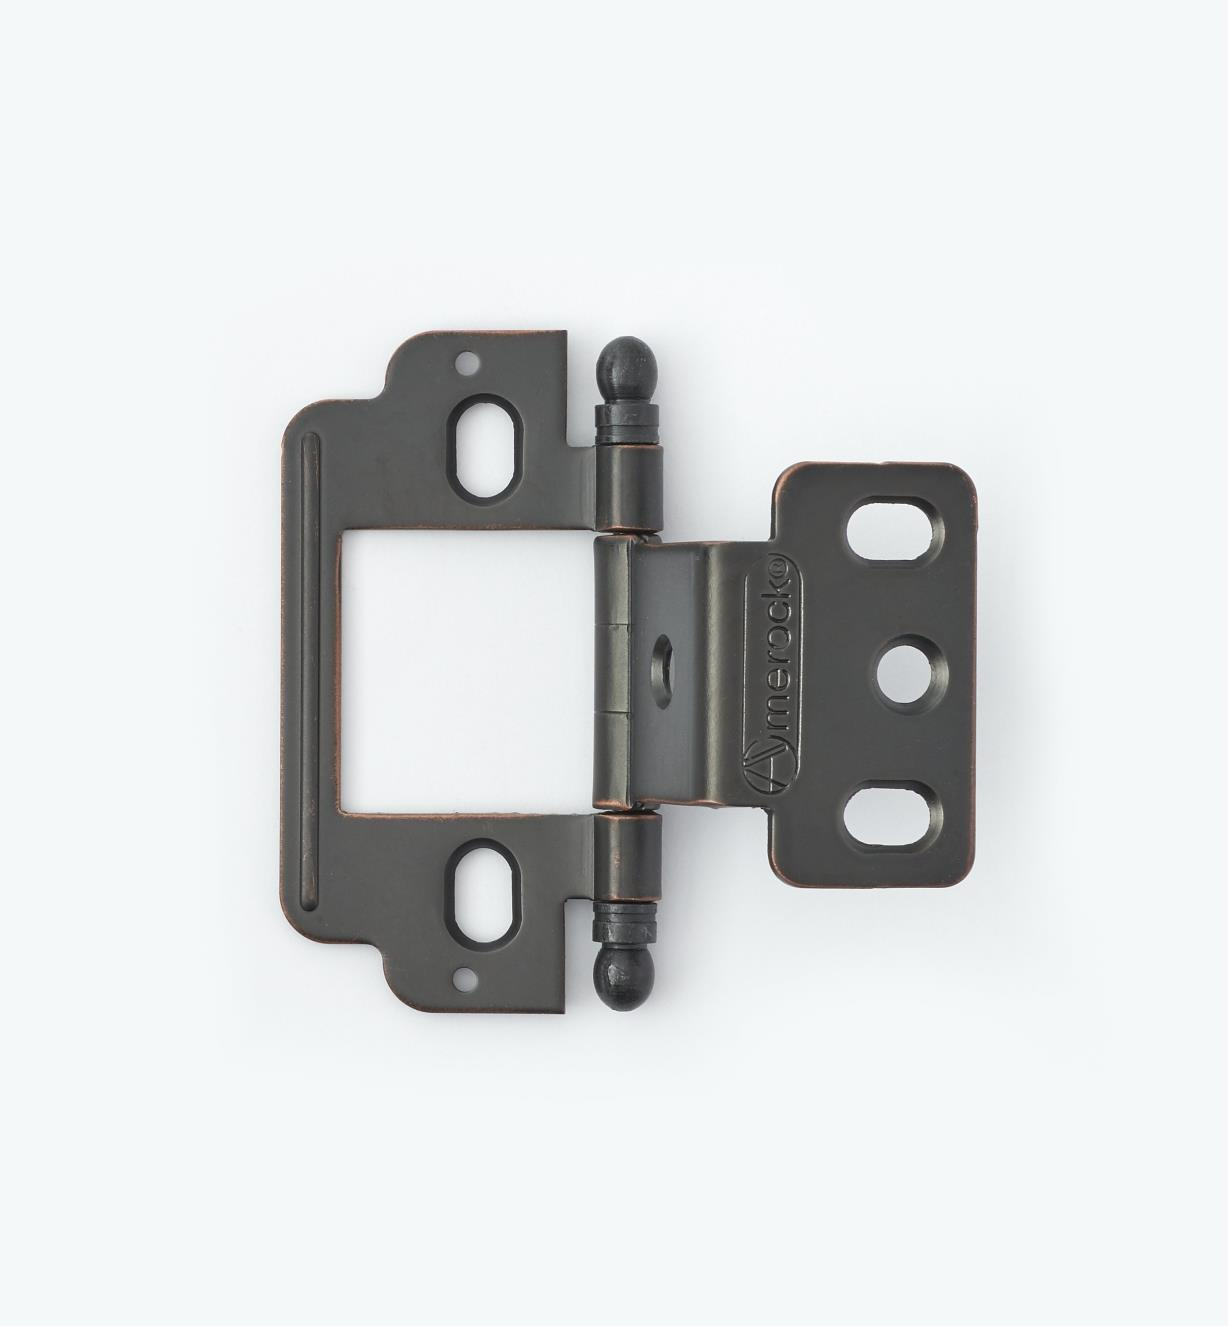 01H3192 - Partial-Wrap Hinge,Oil-Rubbed Bronze, Ball